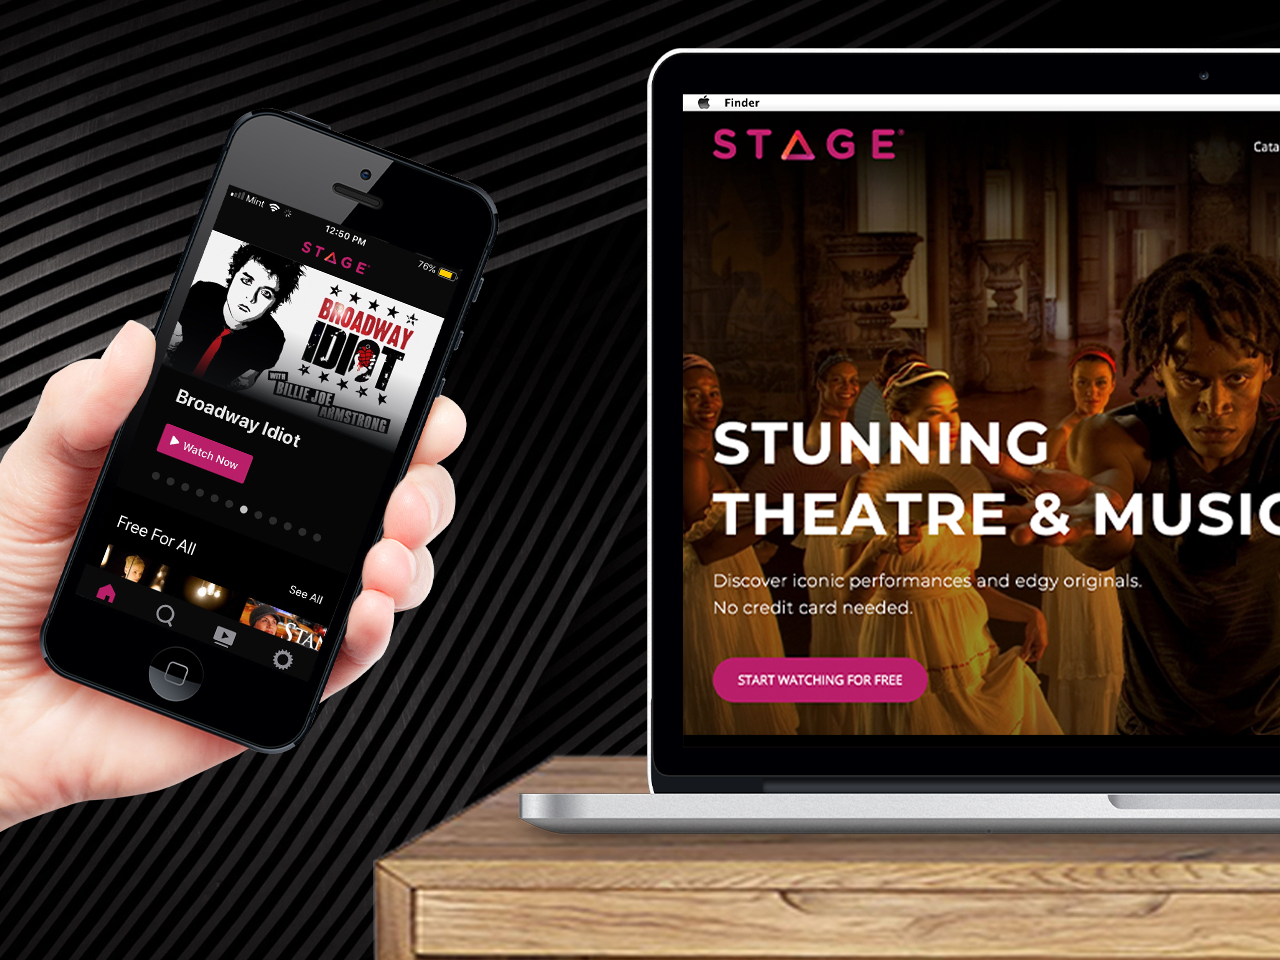 GOT SHOWS? THEATRE STREAMING SERVICE STAGE WANTS TO HOST THEM - FOR FREE!